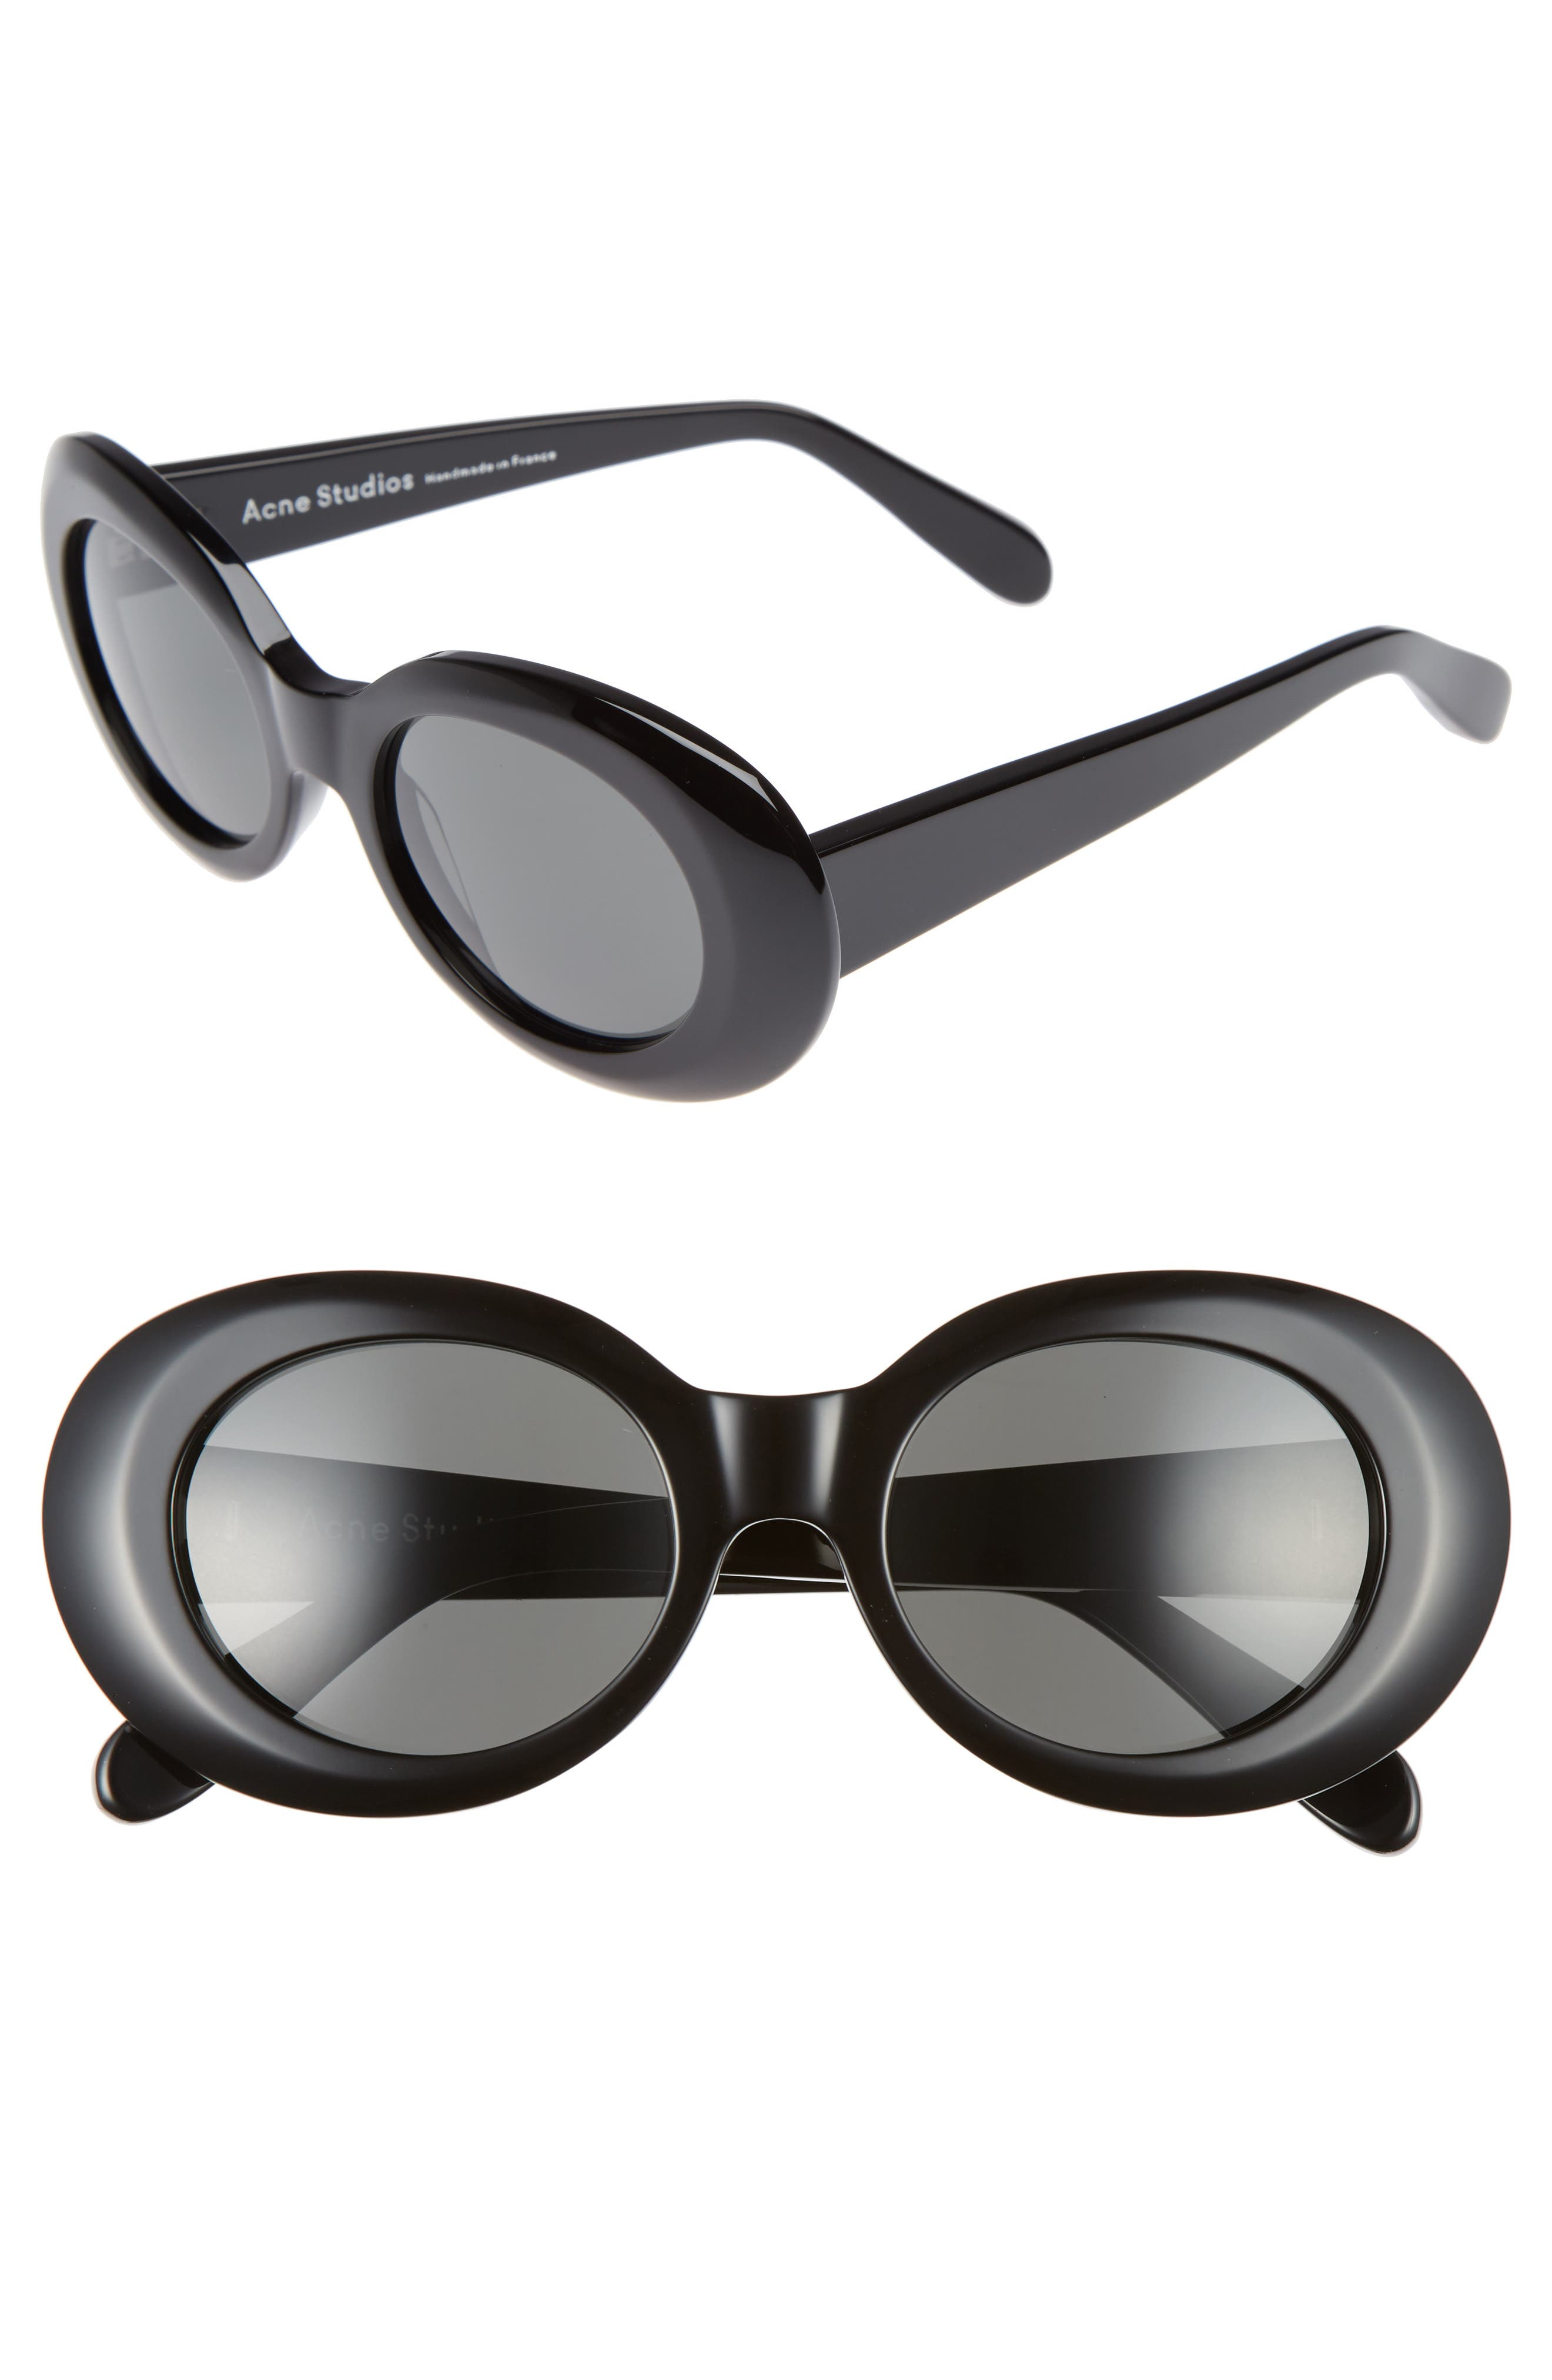 Main Image - ACNE Studios Mustang 47mm Oval Sunglasses